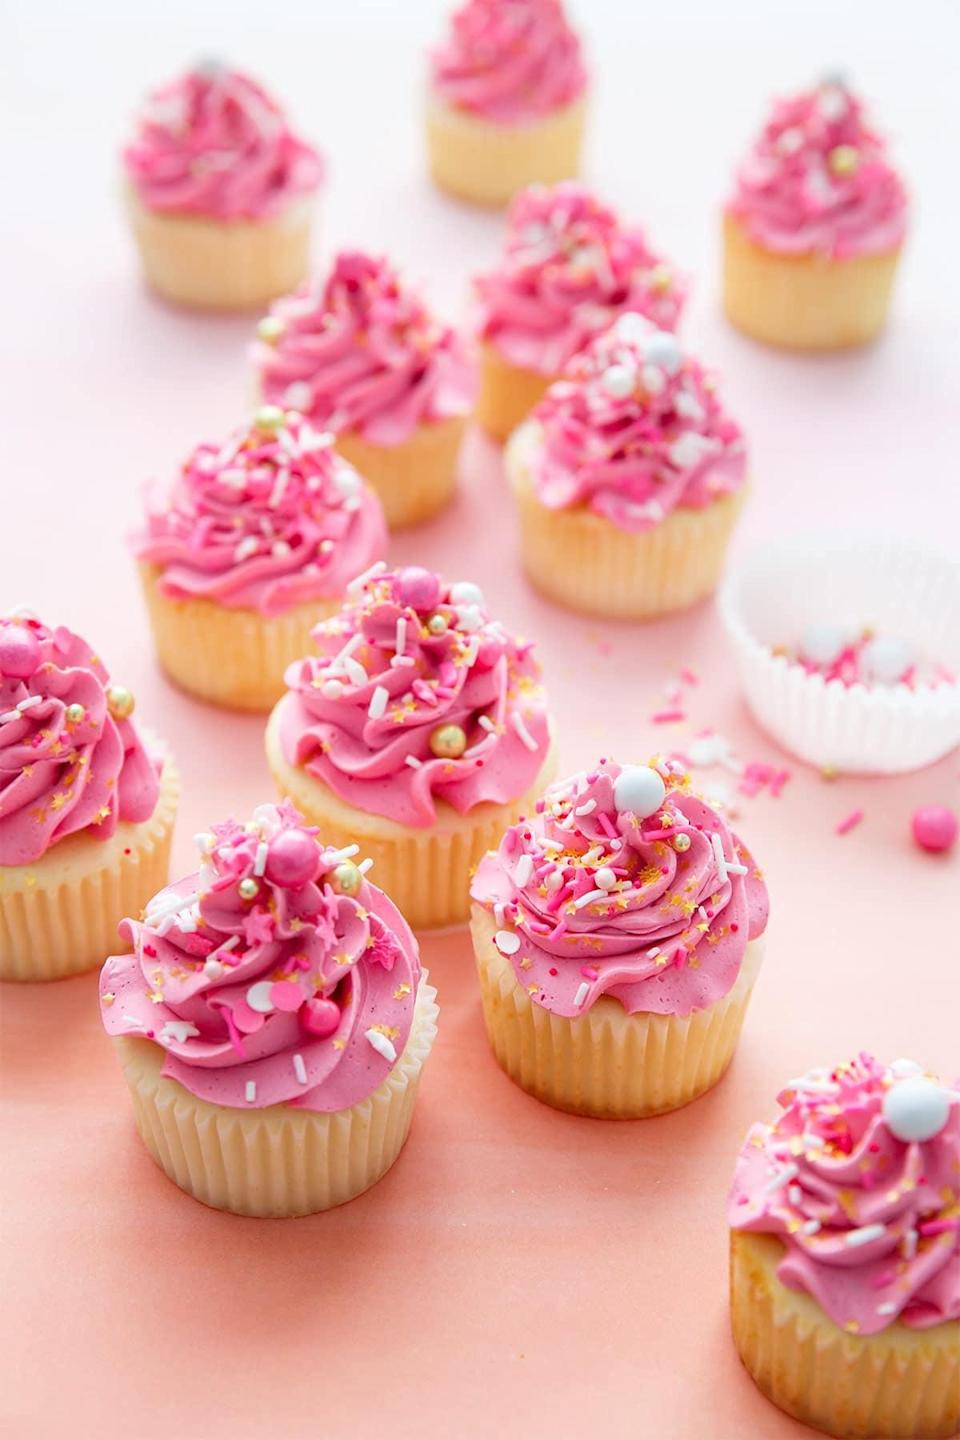 "<p>Warning: these moist white cupcakes are topped with a mound of buttercream and filled with sprinkles - and wow, are they good. They're sweet, cute, and perfect for a Galentine's Day celebration, so we suggest making more than one batch of these, because they're just that good.</p> <p><strong>Get the recipe</strong>: <a href=""https://www.loveandoliveoil.com/2017/10/sprinkle-filled-cupcakes-marshmallow-buttercream.html"" class=""link rapid-noclick-resp"" rel=""nofollow noopener"" target=""_blank"" data-ylk=""slk:sprinkle-filled cupcakes with marshmallow buttercream"">sprinkle-filled cupcakes with marshmallow buttercream</a></p>"